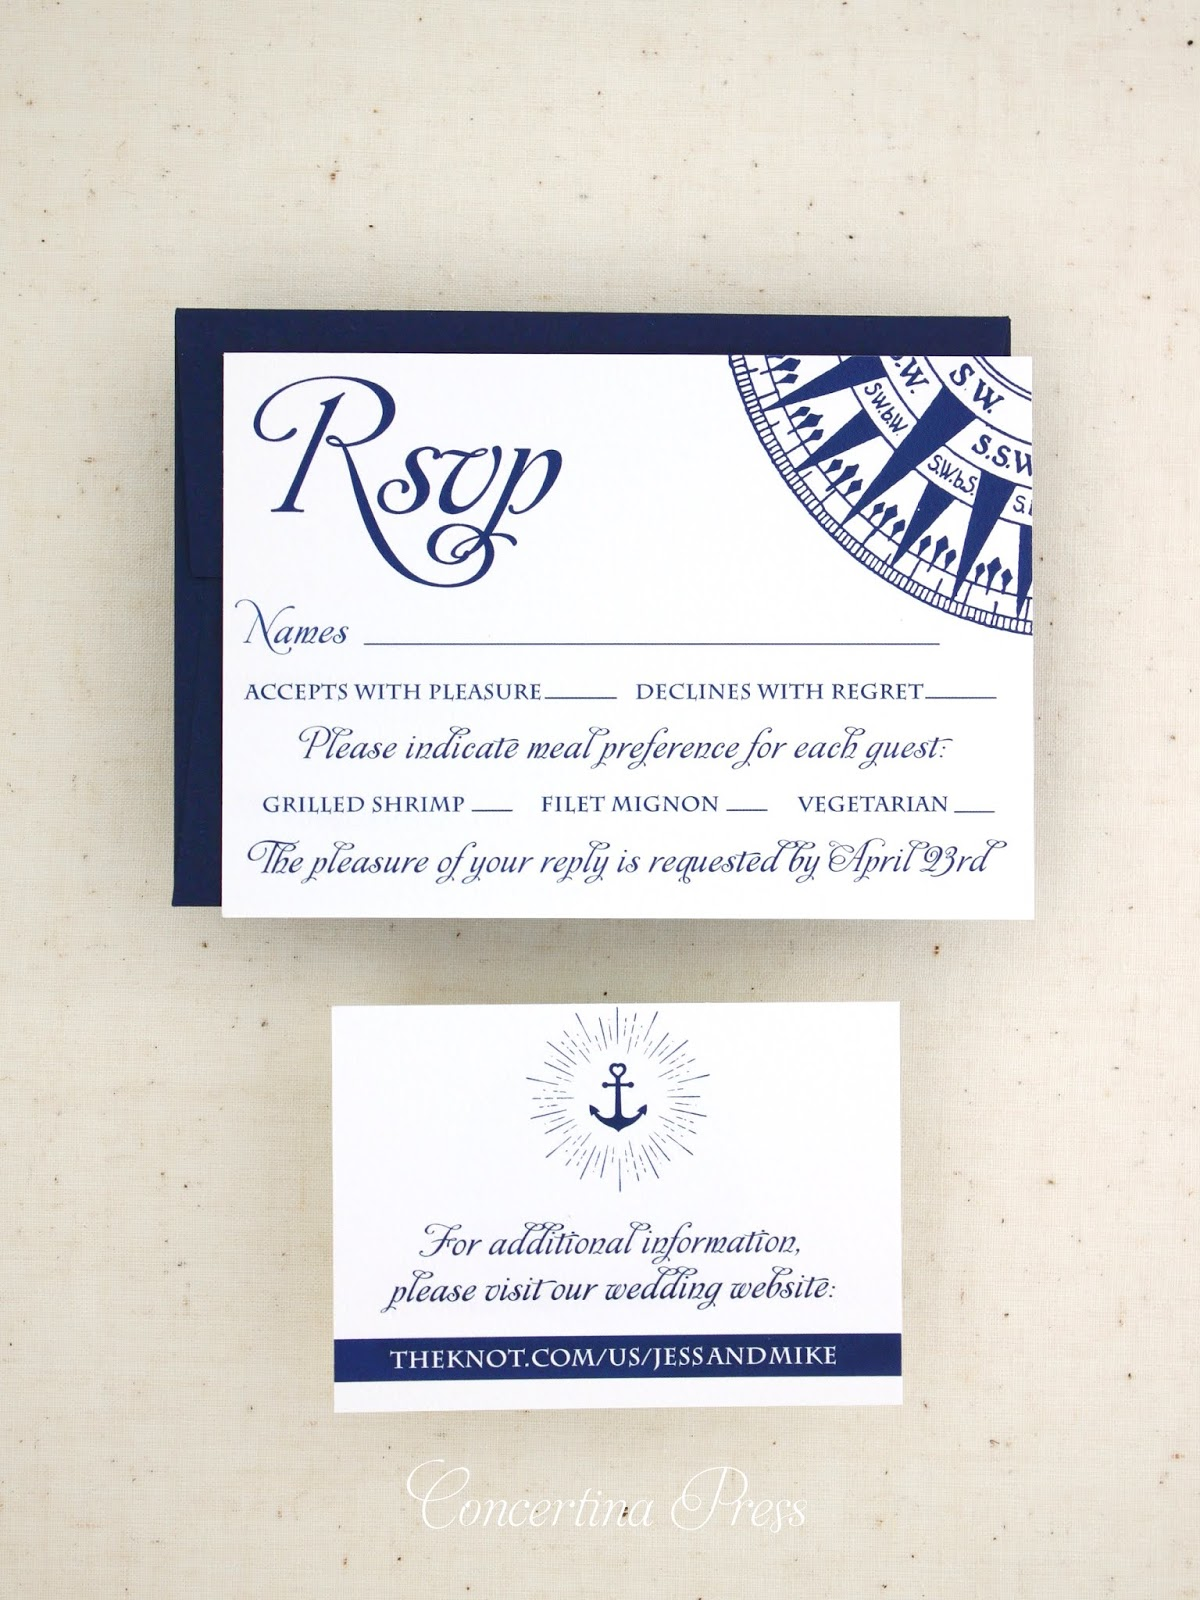 Nautical Compass Wedding RSVP and website card from Concertina Press in Navy Blue and White